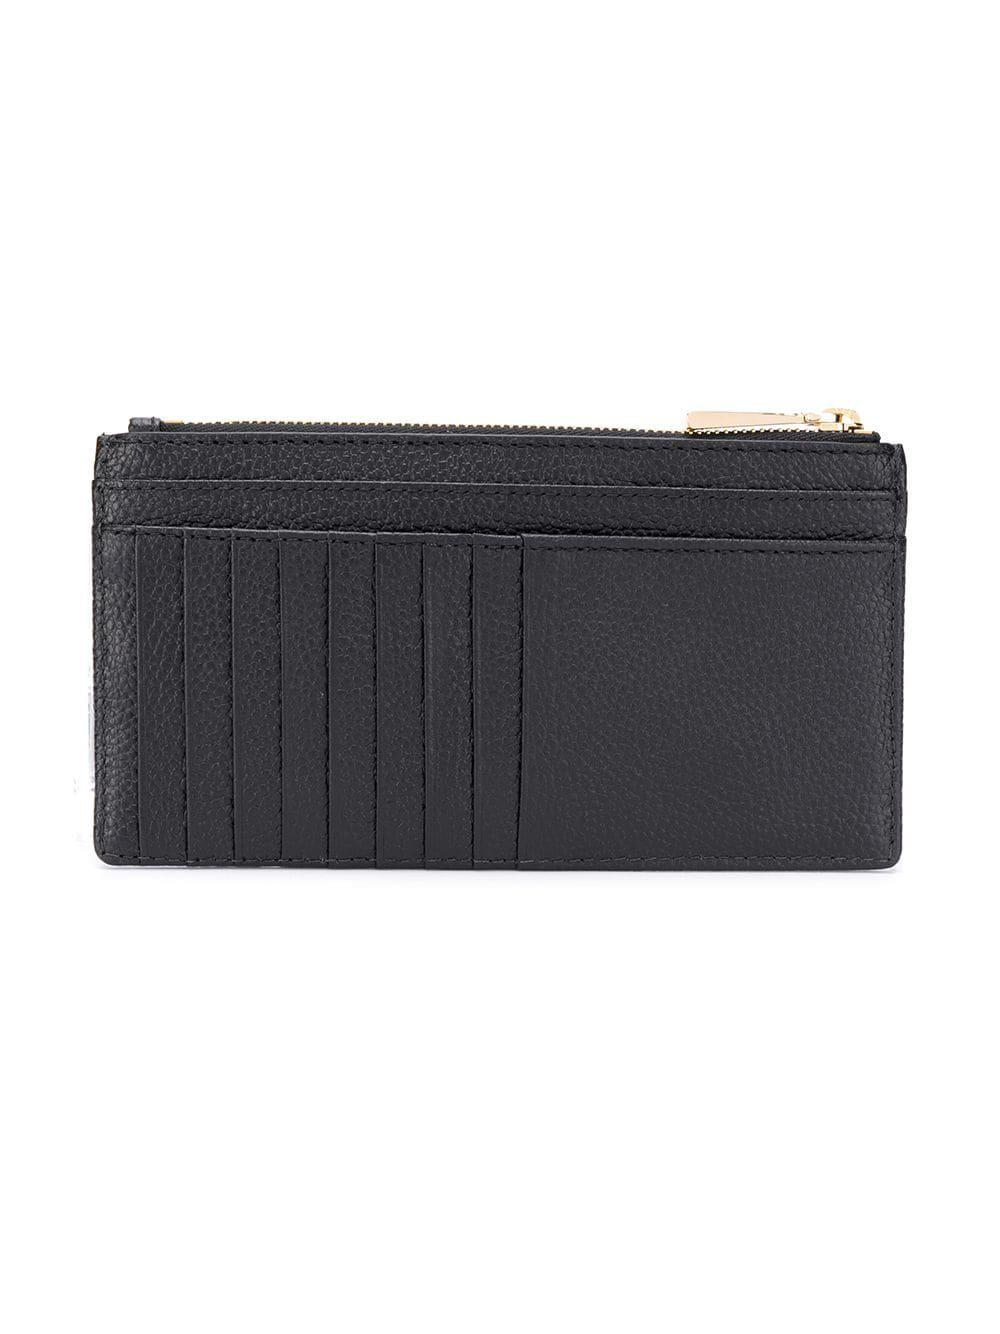 c1a974e84348e MICHAEL Michael Kors - Black Large Card Case - Lyst. View fullscreen